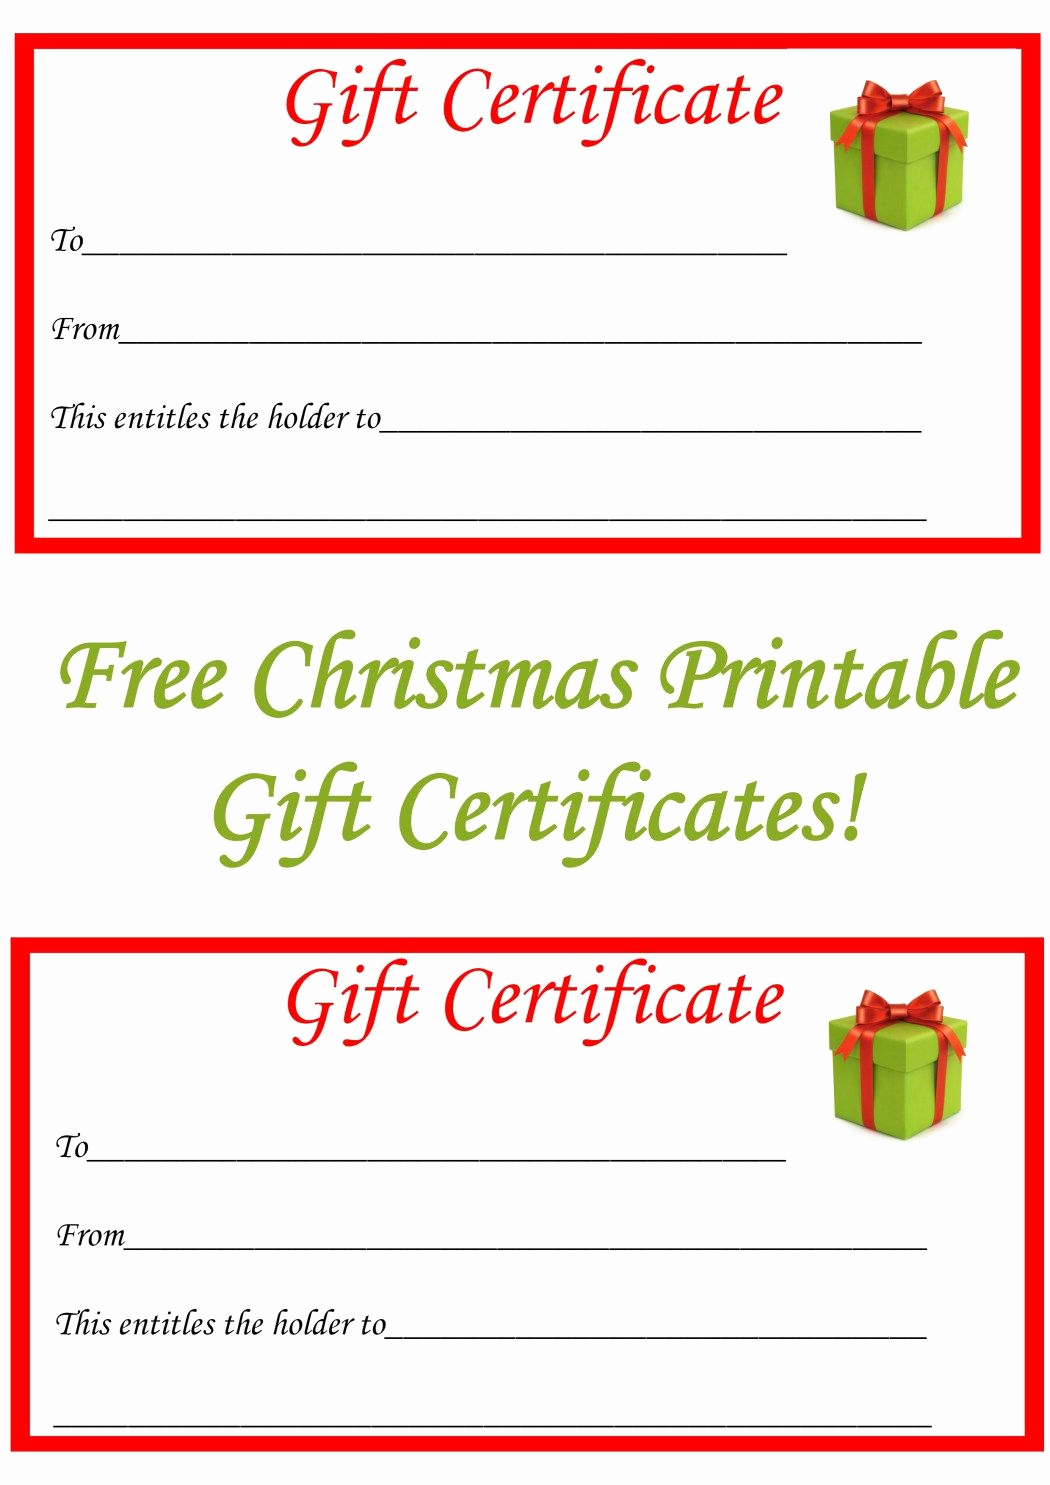 Free Printable Gift Certificate Templates New Best 25 Printable T Certificates Ideas On Pinterest